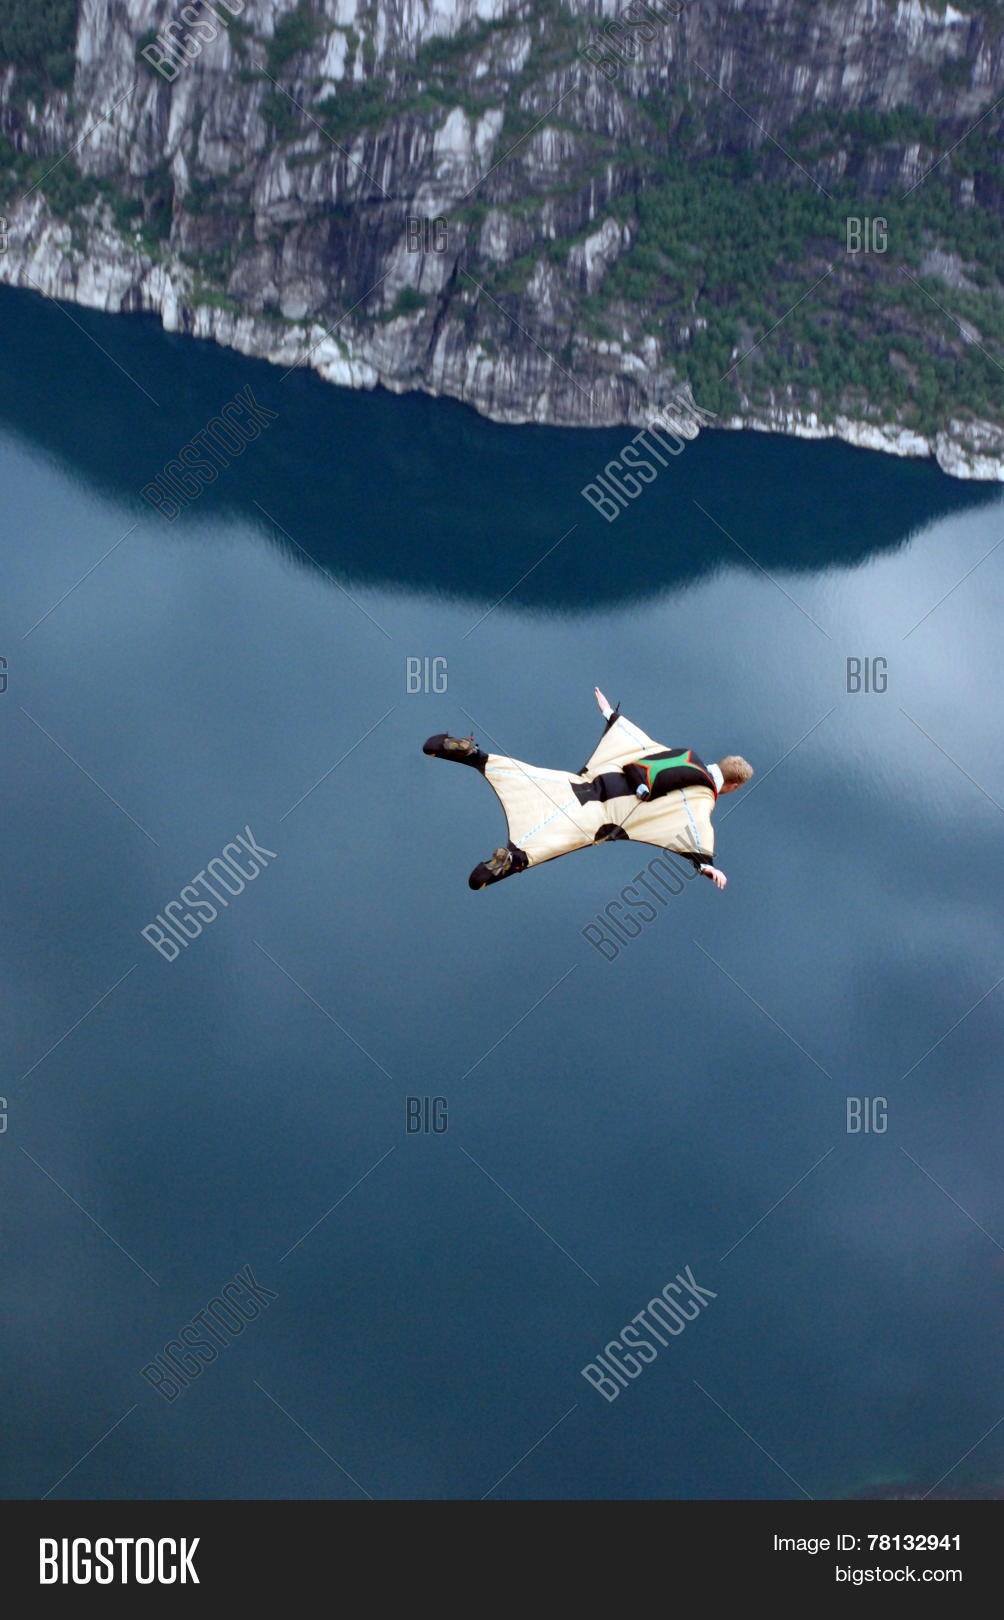 BASE Jump Off Cliff Image & Photo (Free Trial) | Bigstock